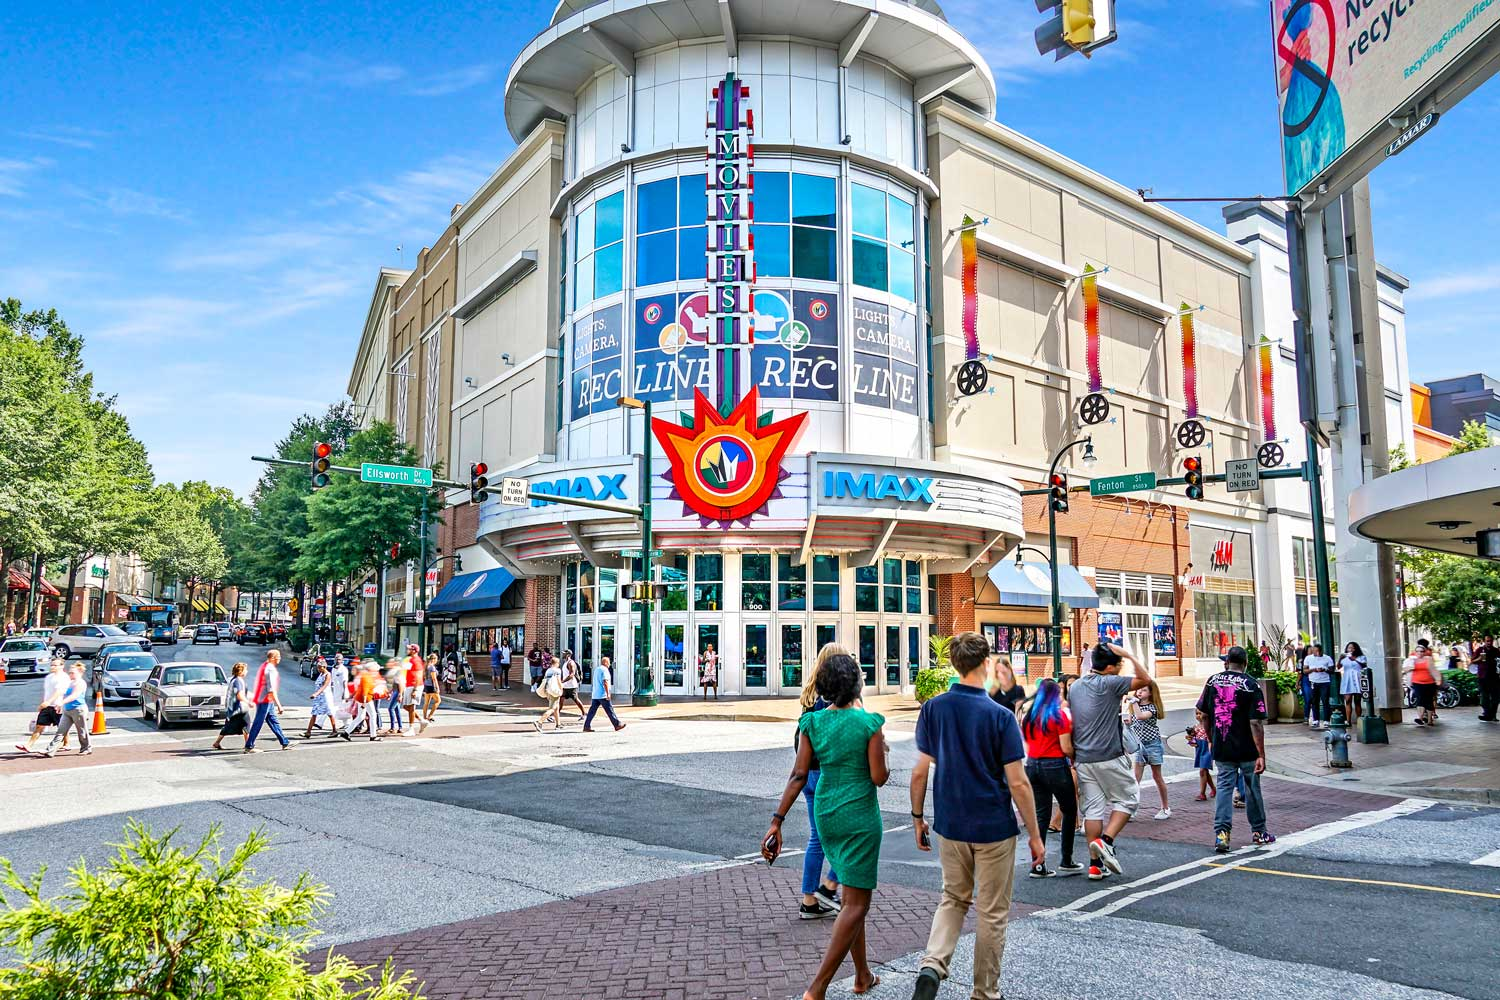 15 minutes to Regal Majestic & IMAX theater in Downtown Silver Spring, MD